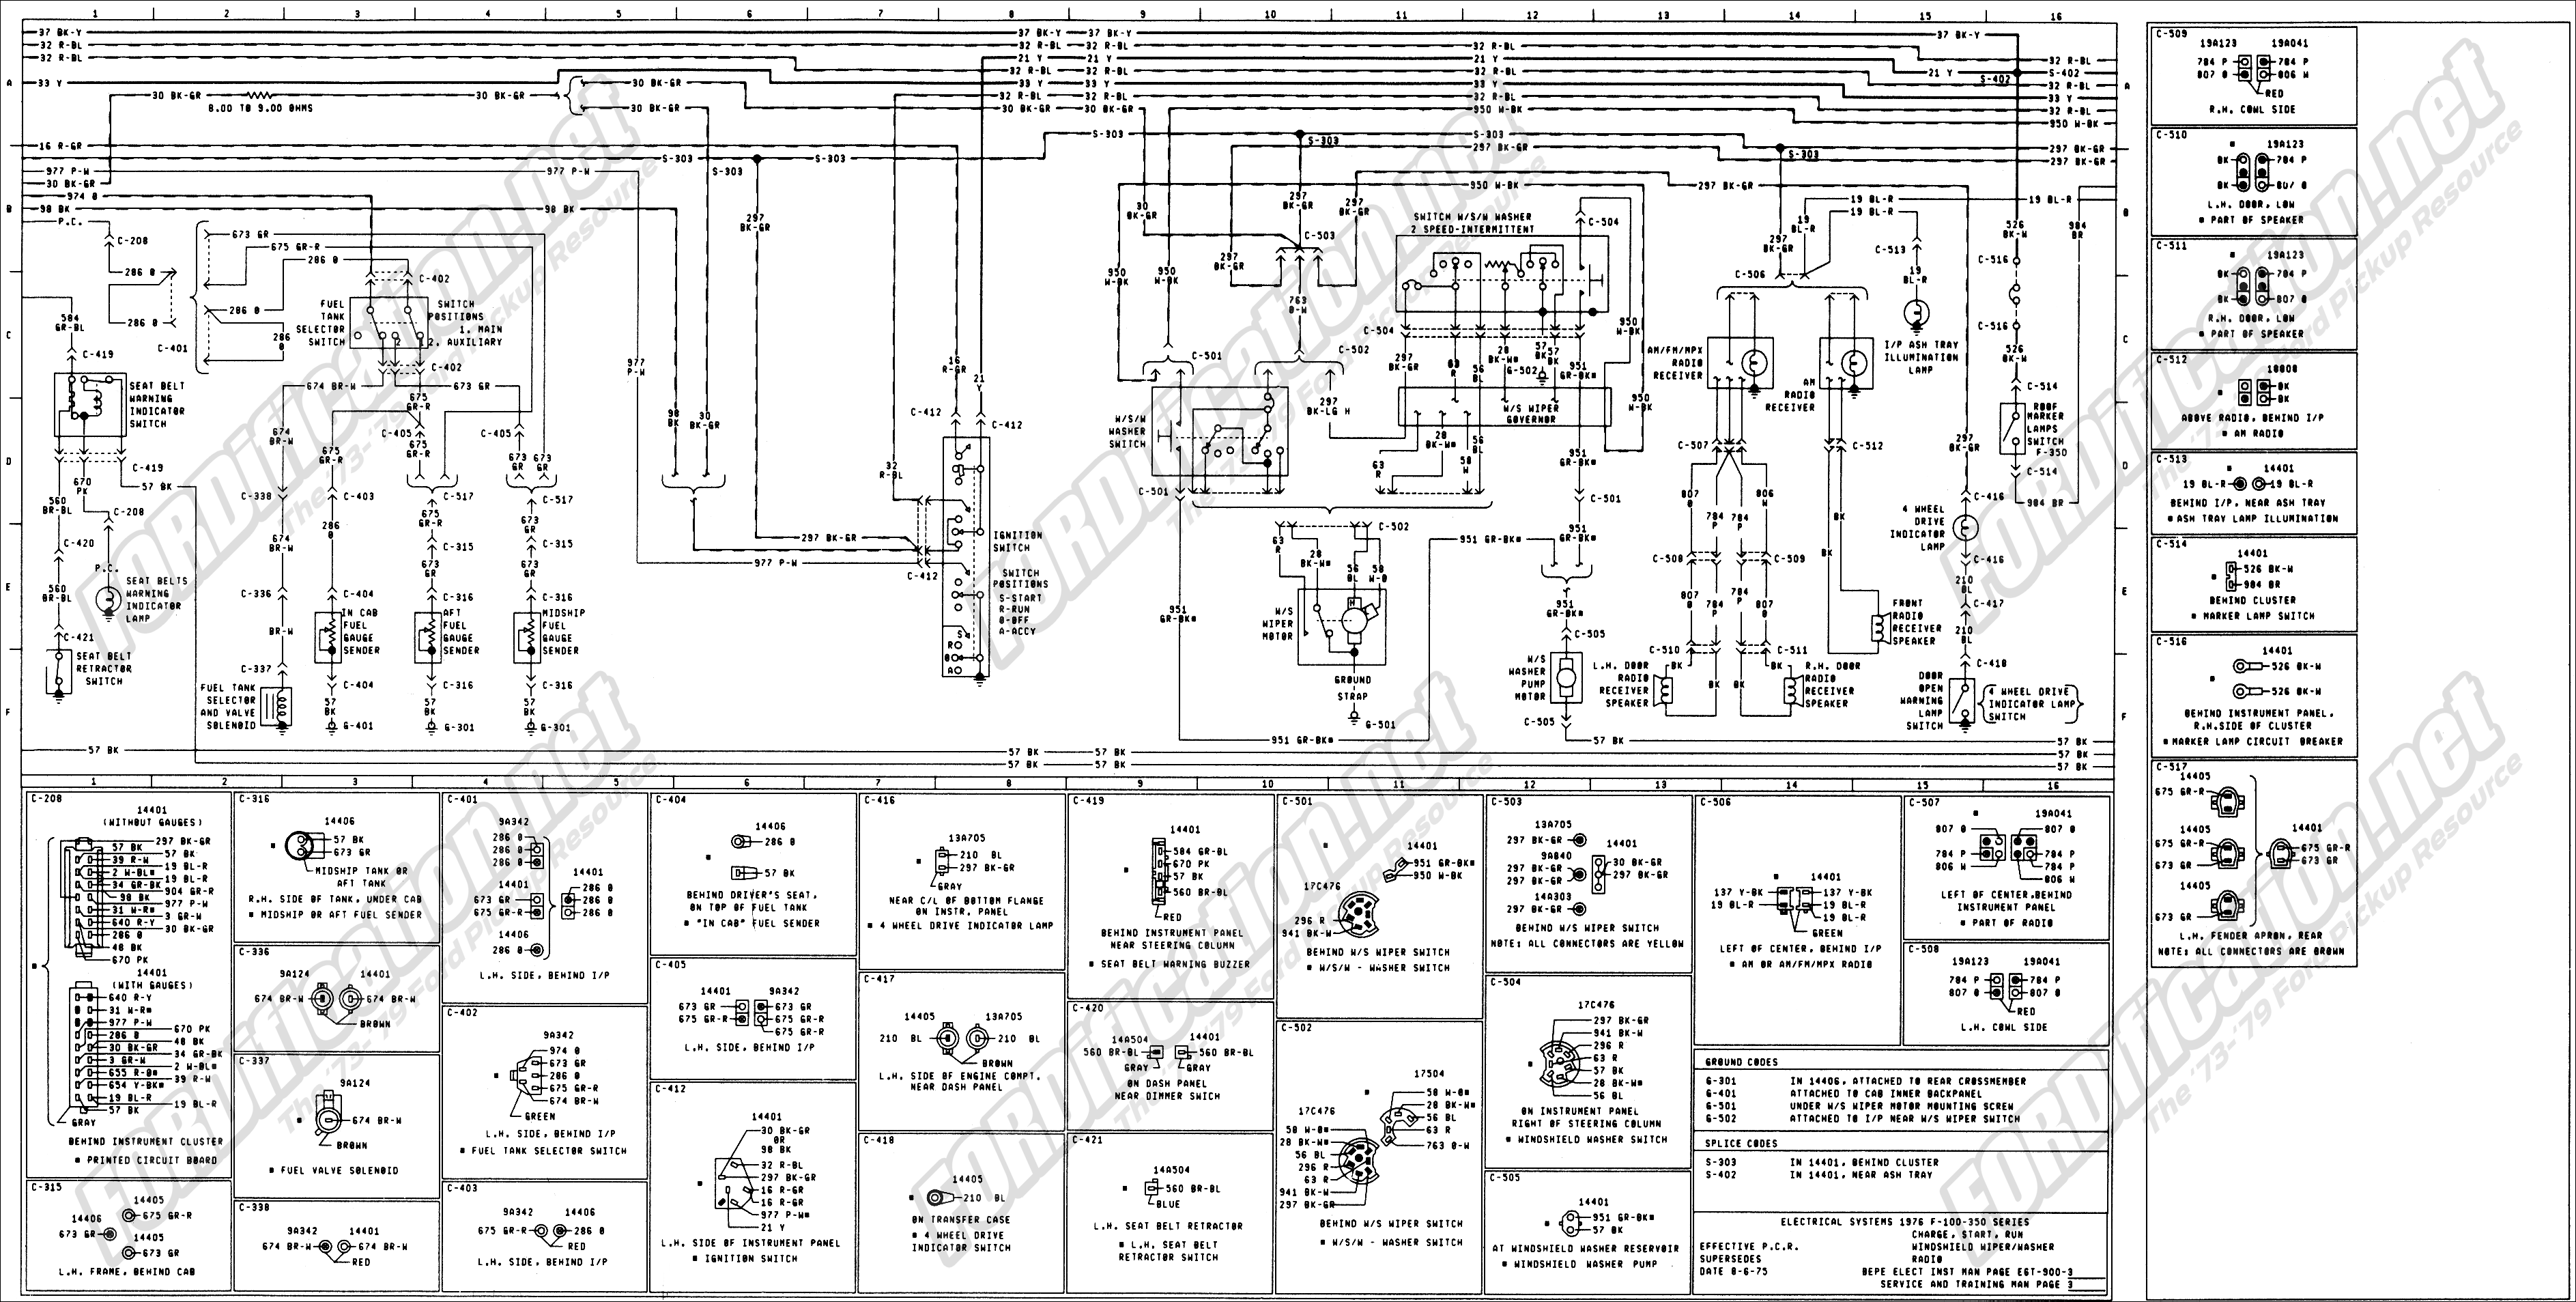 2001 F 250 Wiring Diagram | Online Wiring Diagram  Ford Taurus Ac Wiring Diagram on 02 nissan xterra wiring diagram, 02 toyota celica wiring diagram, 02 ford taurus remote control, 2003 ford taurus cylinder diagram, 02 ford taurus lights, 02 chevy venture wiring diagram, 2000 ford taurus engine diagram, ford taurus 3.0 engine diagram, 02 bmw x5 wiring diagram, 2002 ford taurus parts diagram, 2003 ford taurus spark plug diagram, 02 mazda 626 wiring diagram, 2000 ford taurus spark plug diagram, 02 gmc sierra wiring diagram, 02 bmw 7 series wiring diagram, 02 ford taurus fuel gauge, 02 mazda tribute wiring diagram, 02 chevy silverado wiring diagram, 02 ford taurus serpentine belt diagram, 2001 ford taurus engine diagram,